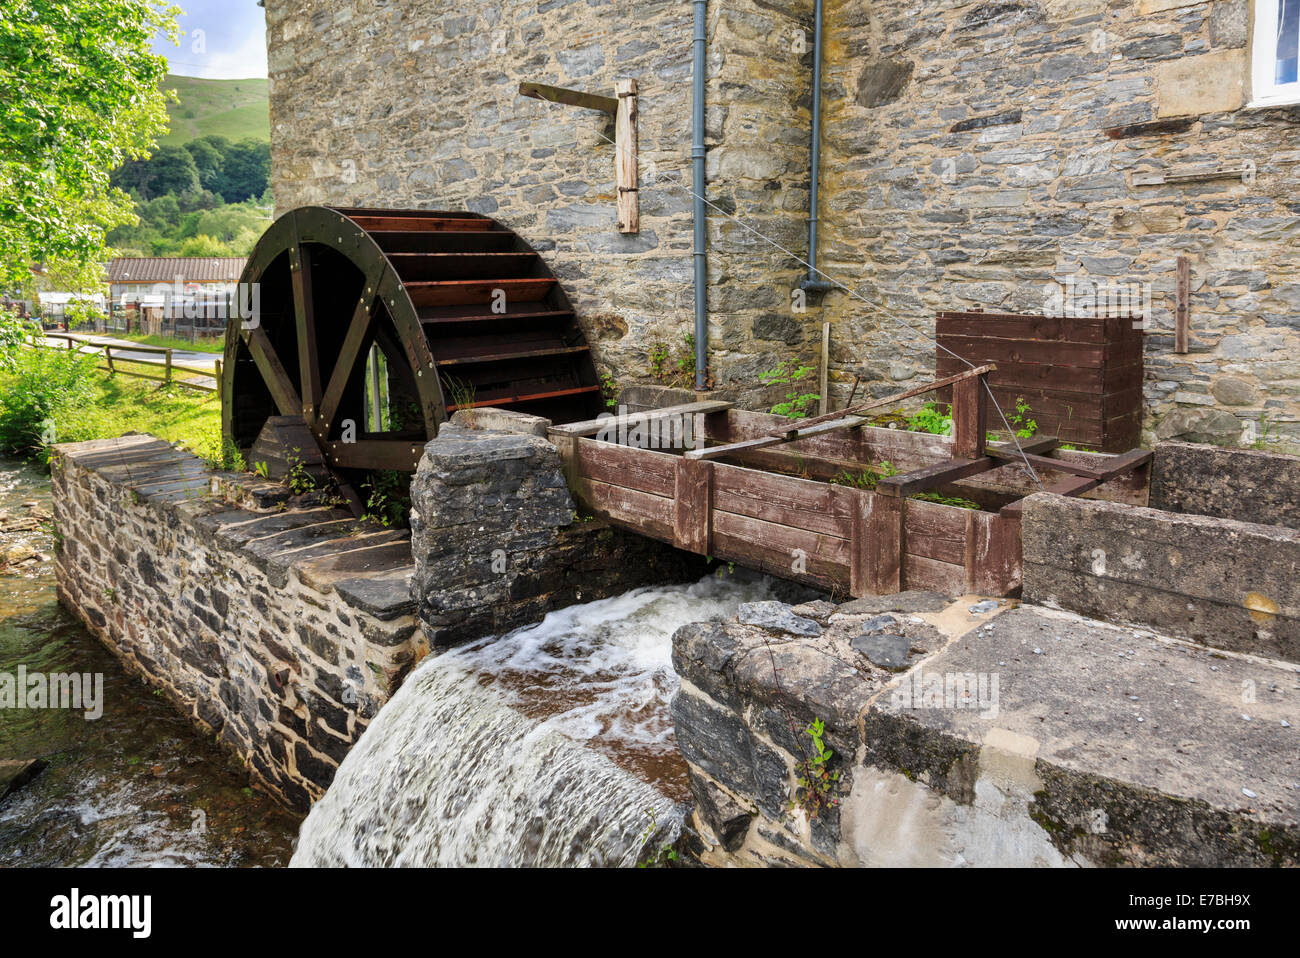 Outside an old working watermill wheel and stream. Blair Atholl, Perth and Kinross, Scotland, UK, Britain - Stock Image